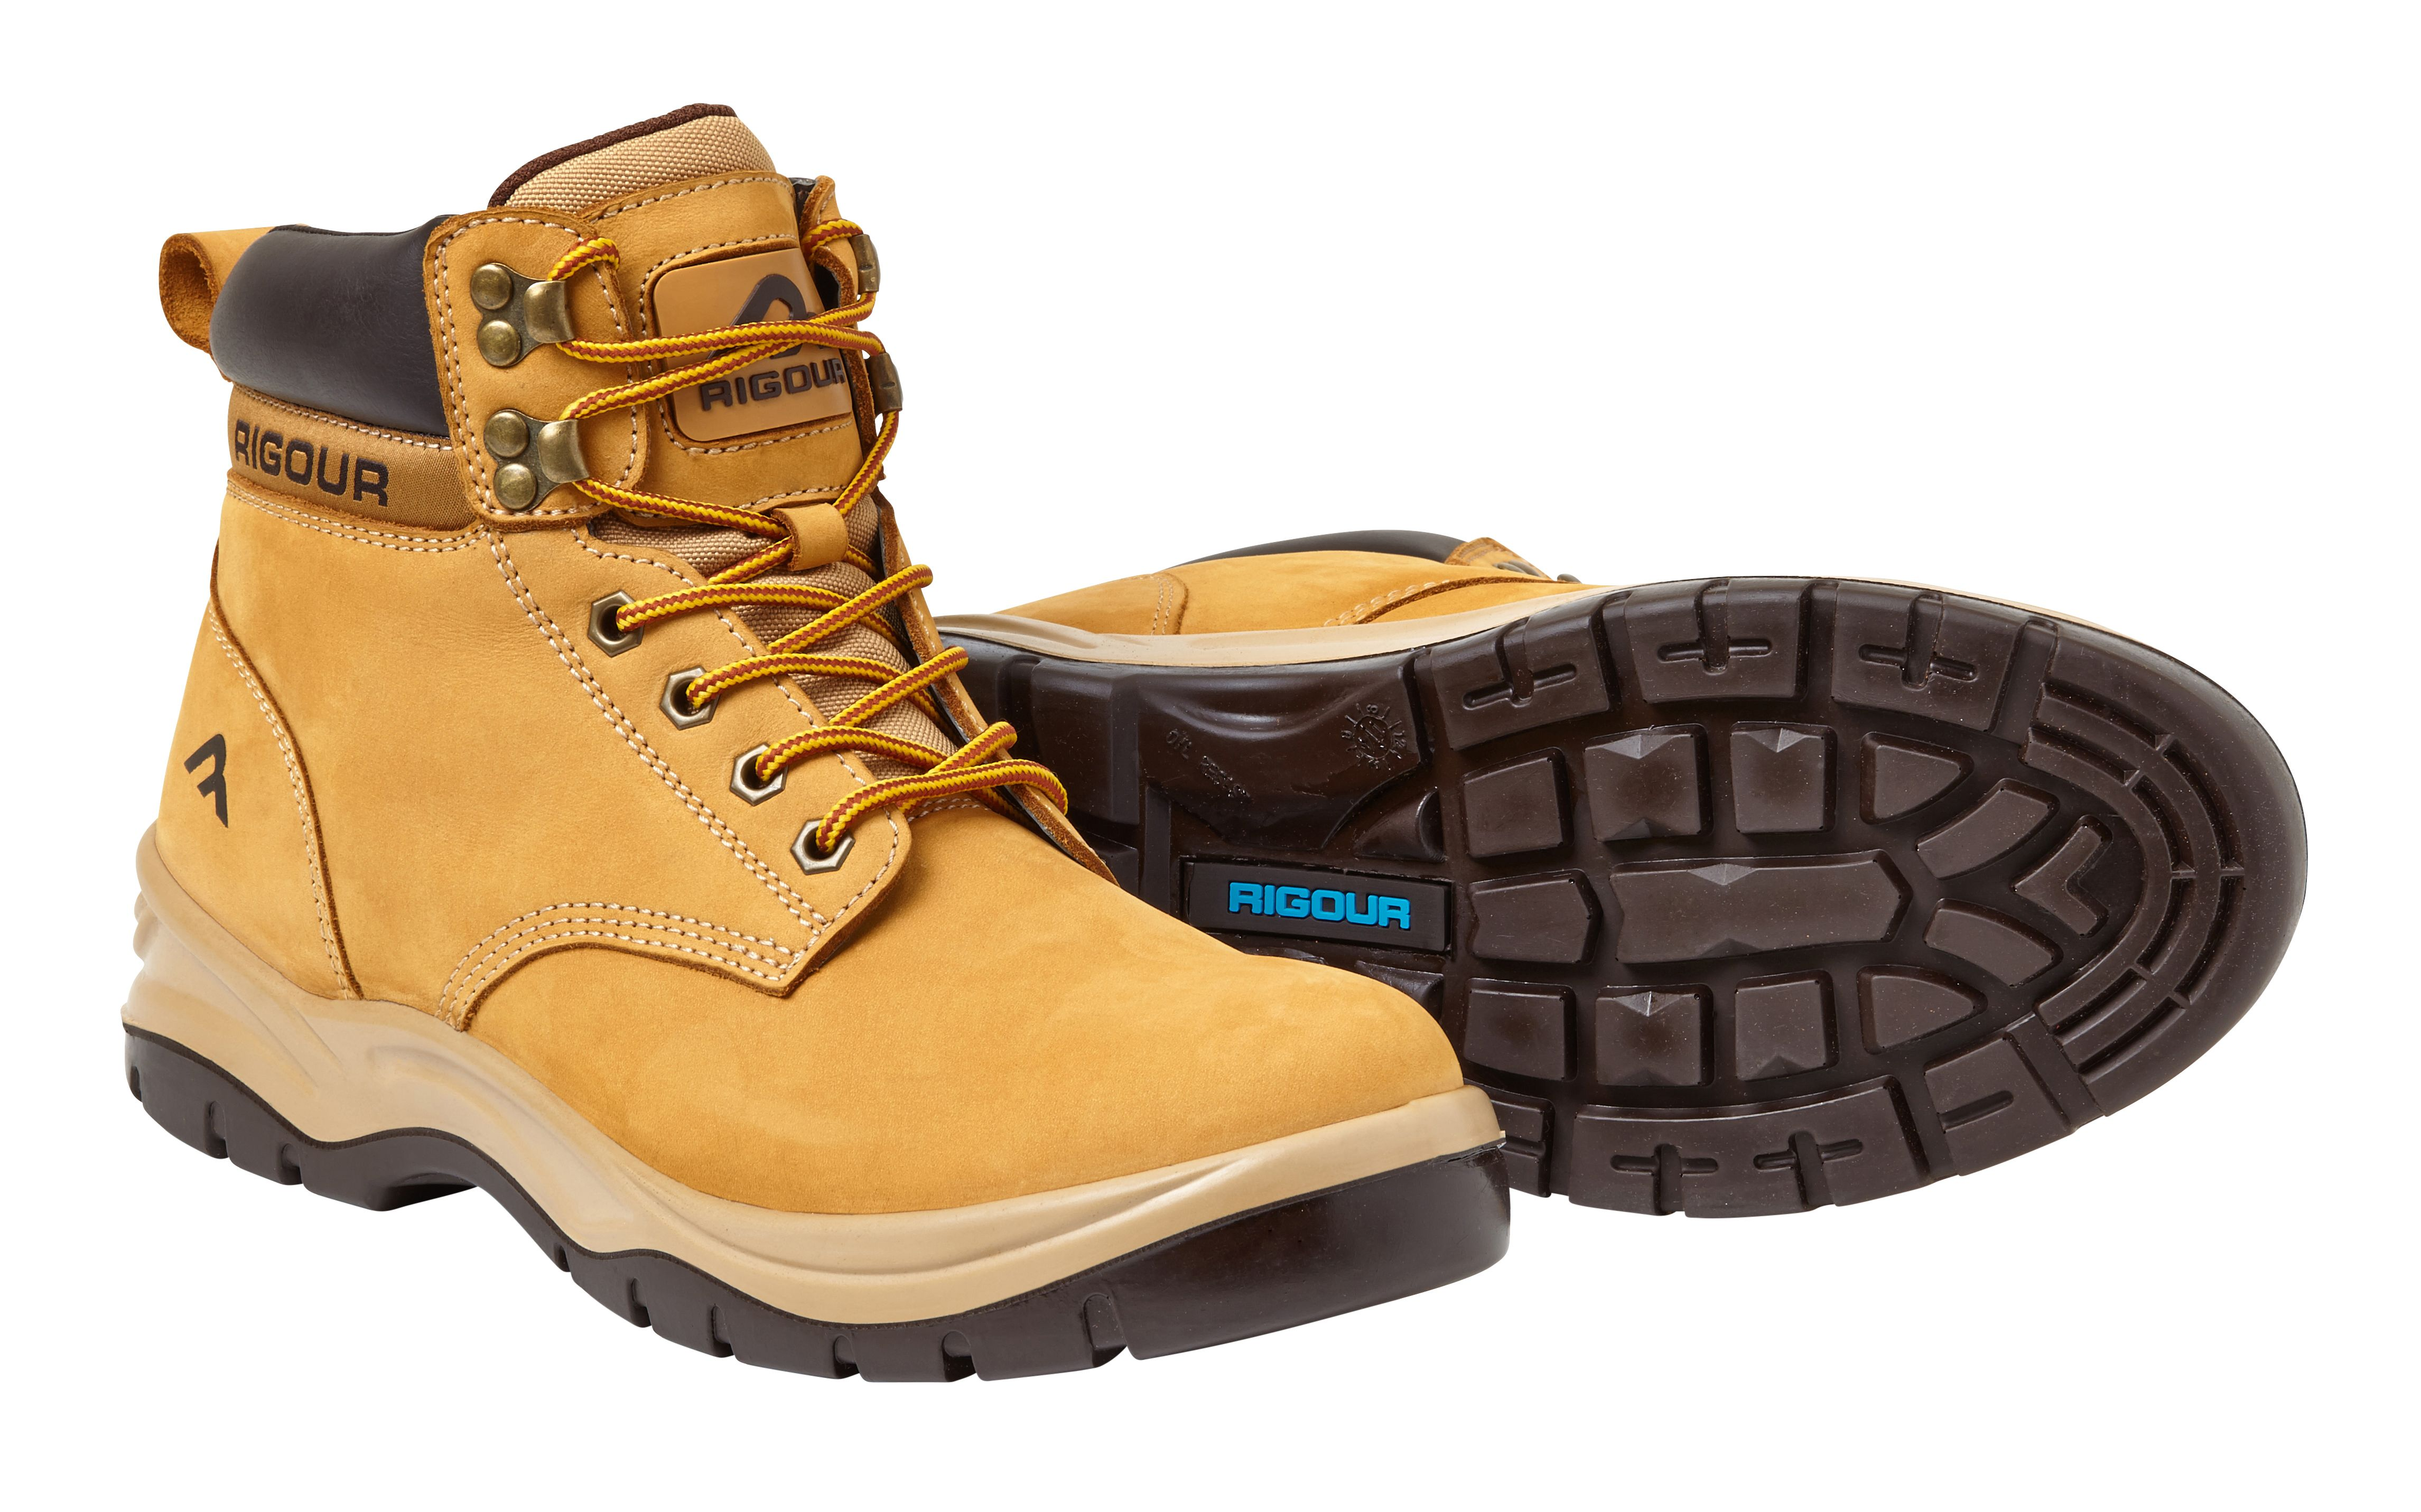 3b6db51a054 Rigour Wheat Safety work boots, size 8 | Departments | DIY at B&Q